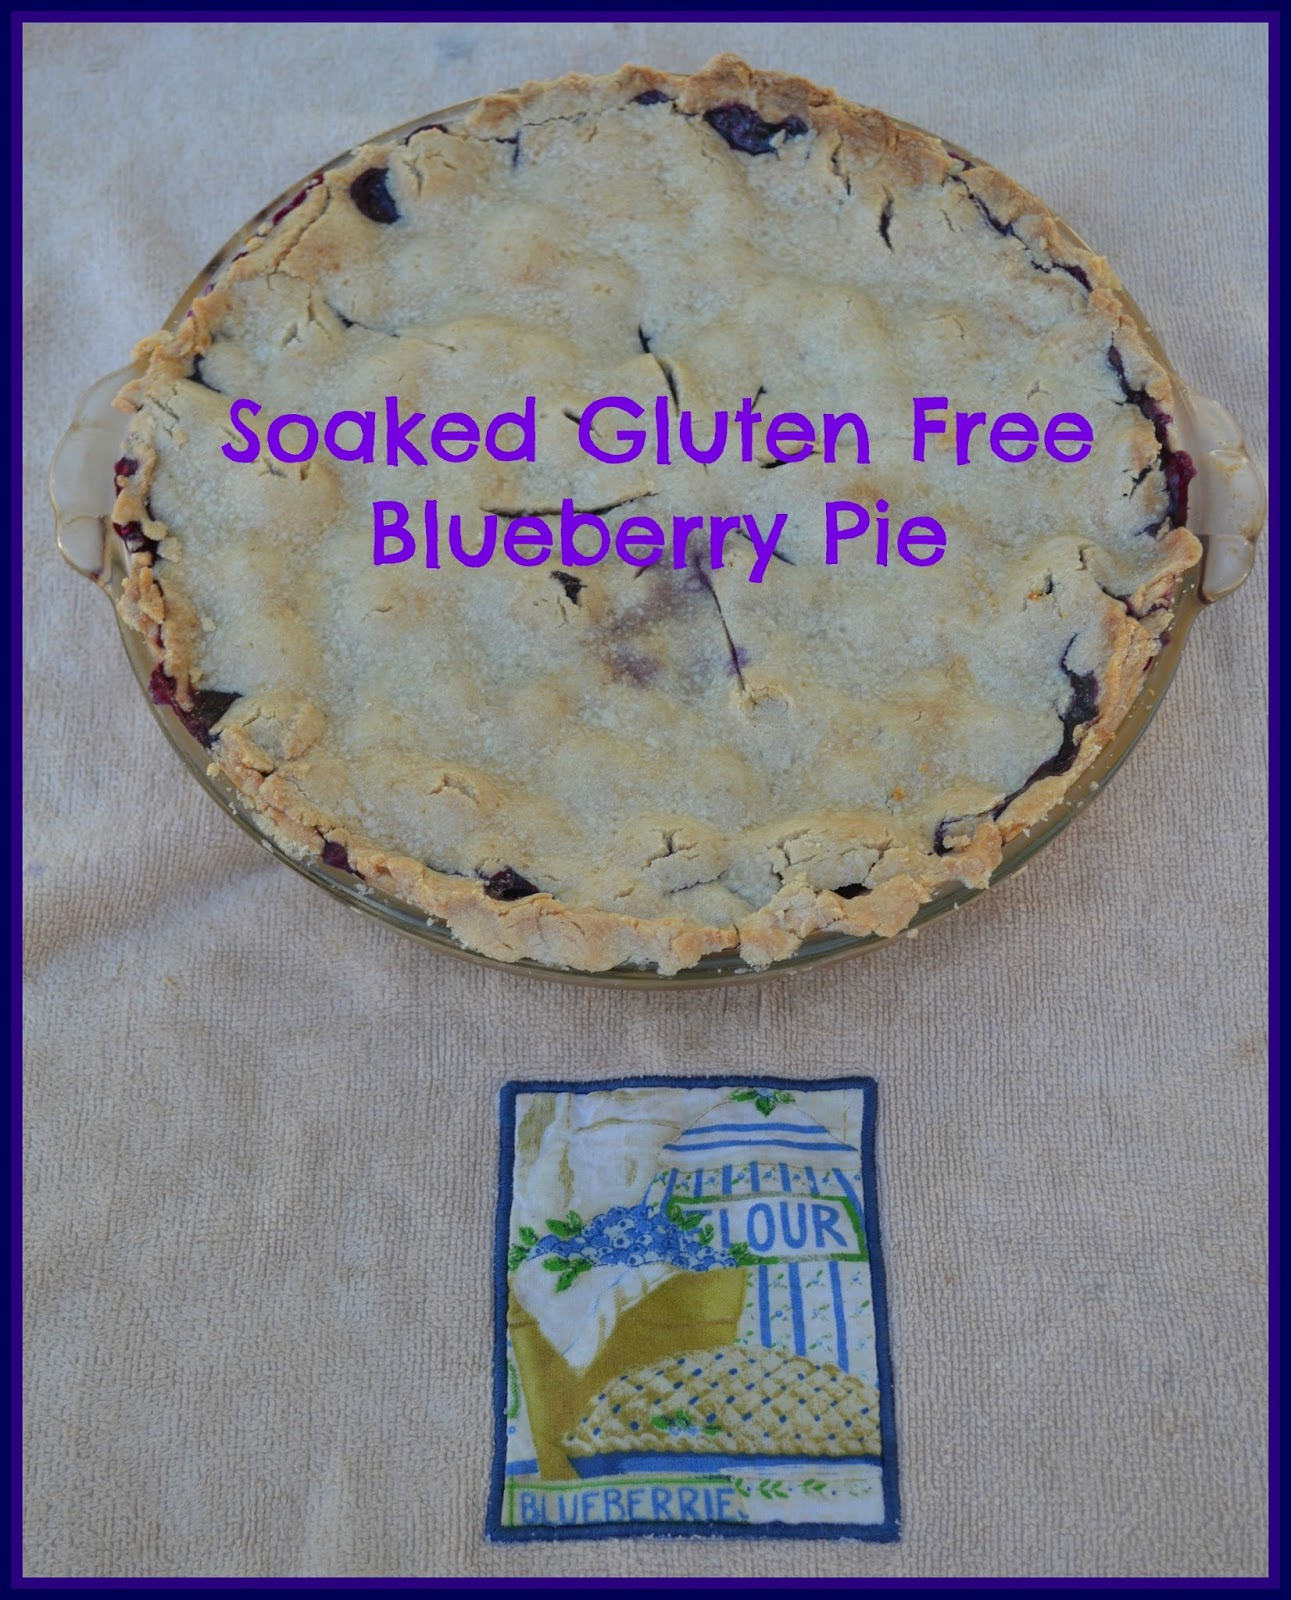 Soaked Gluten Free Blueberry Pie - Just Take A Bite